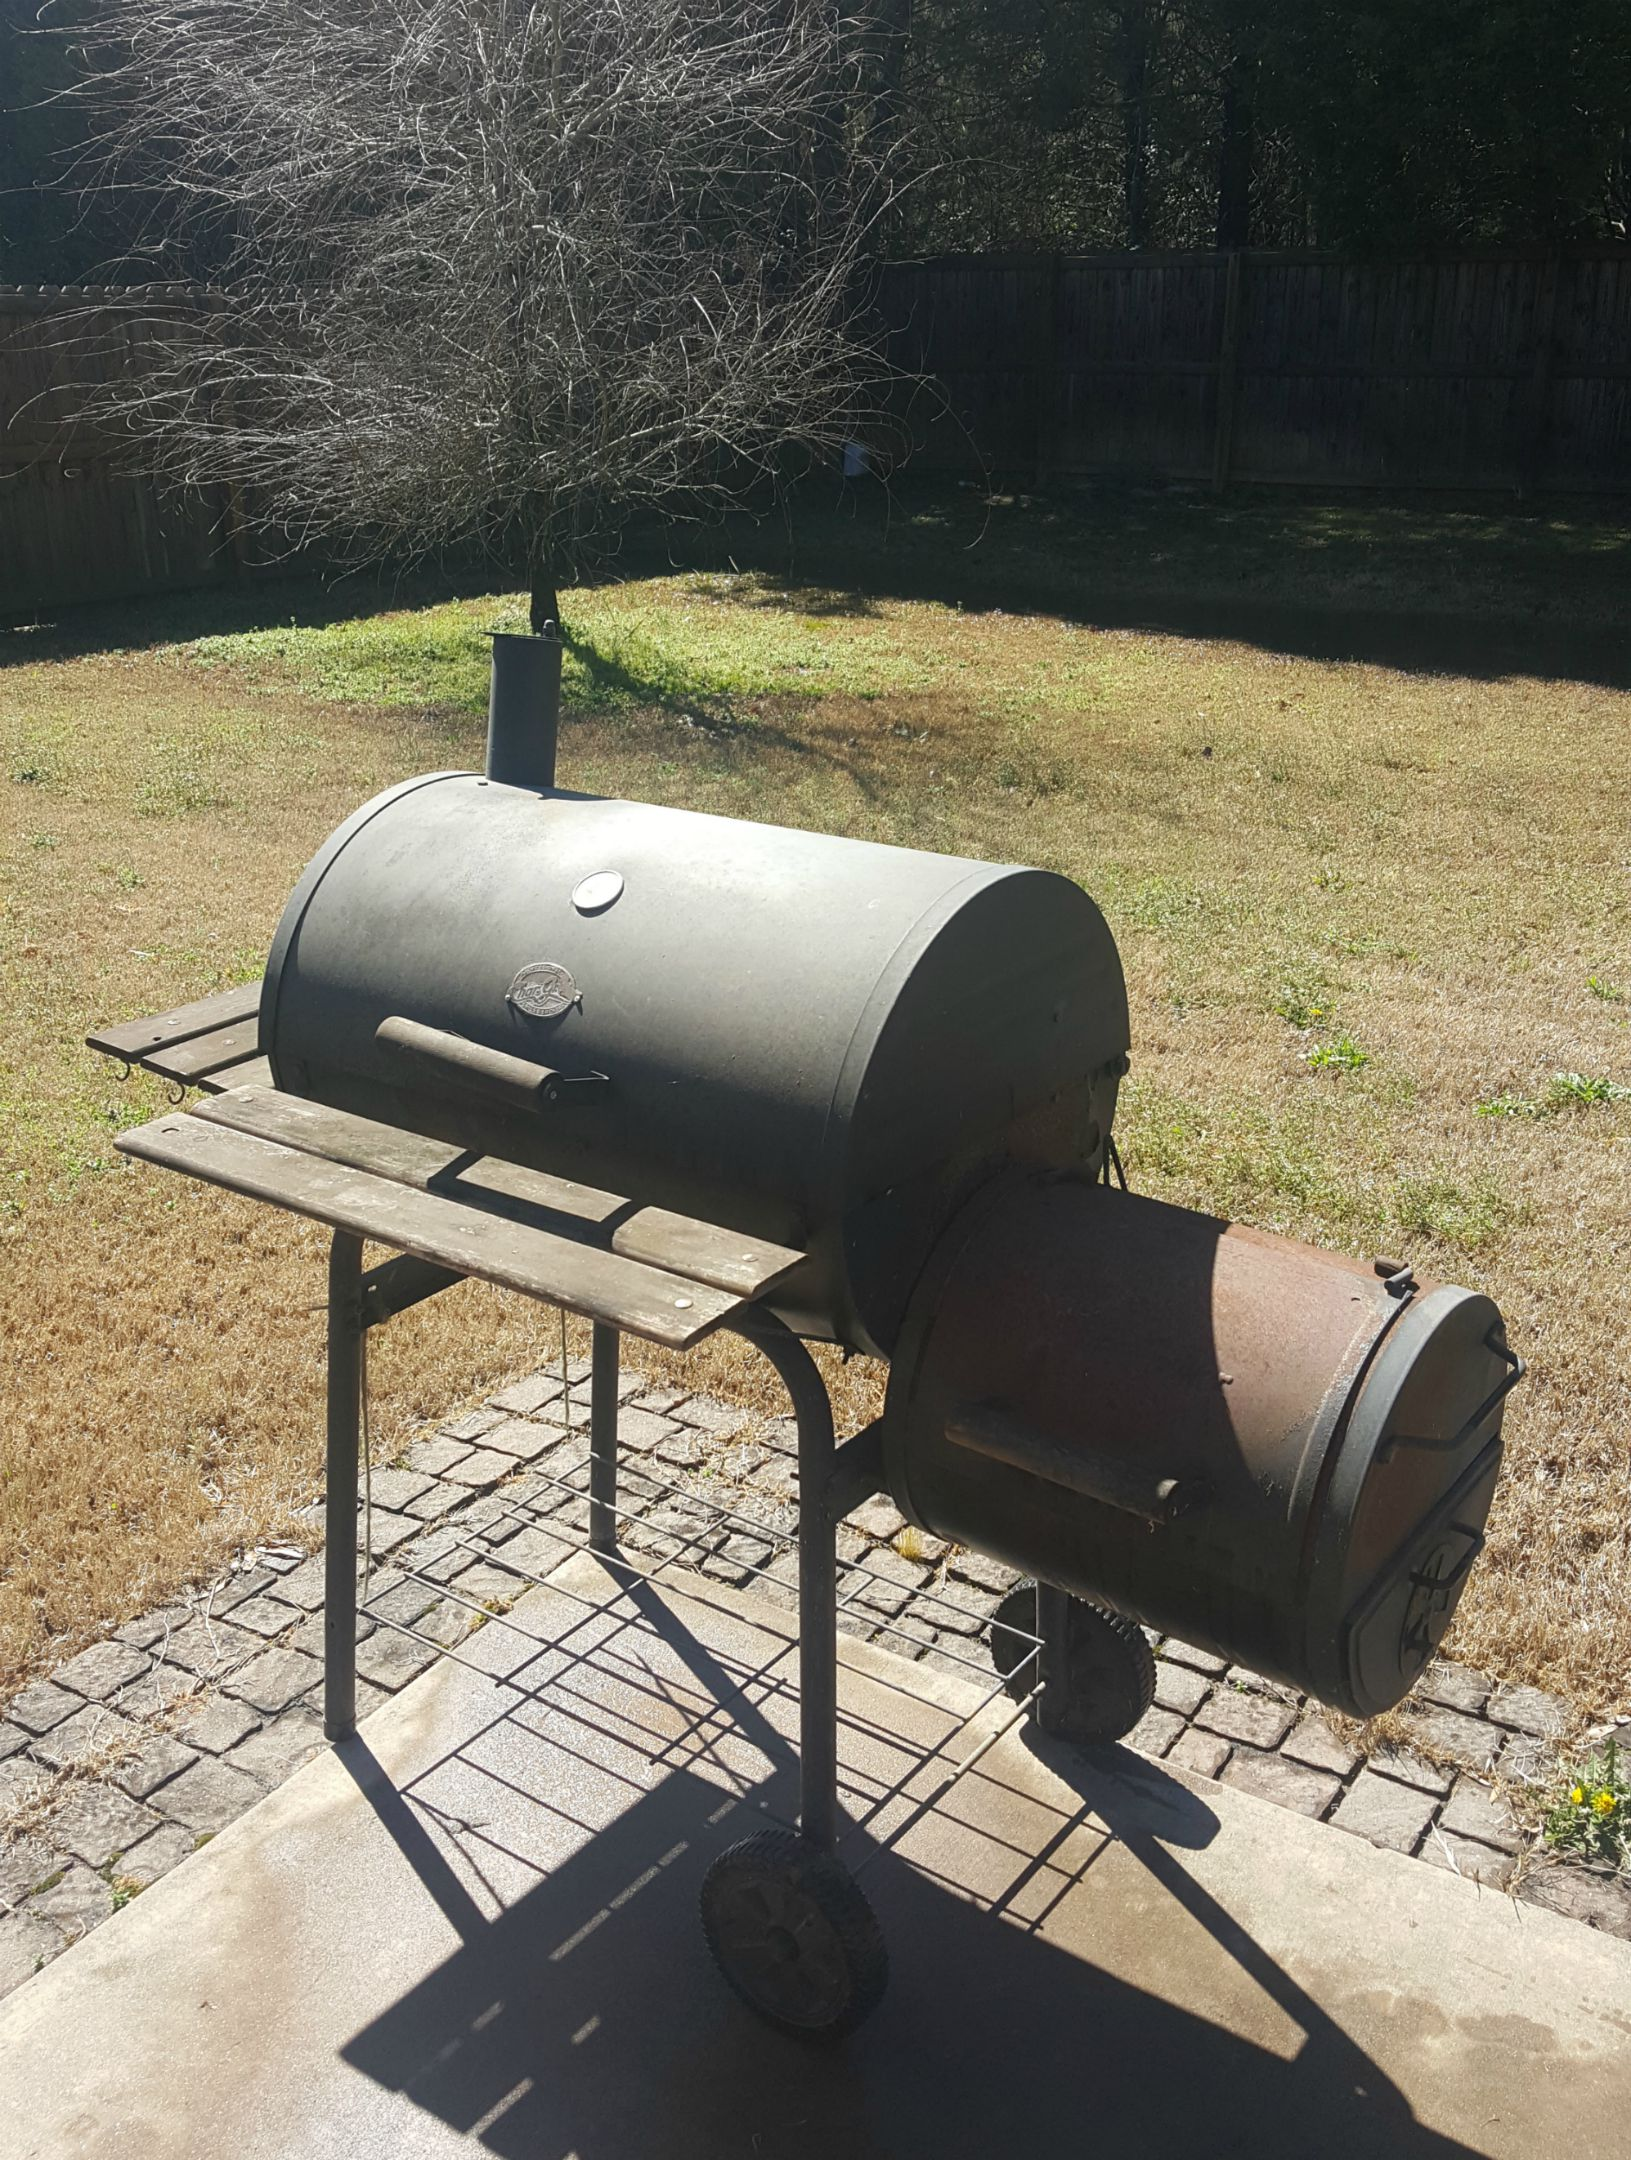 Barbecue Grills For Sale Craigslist